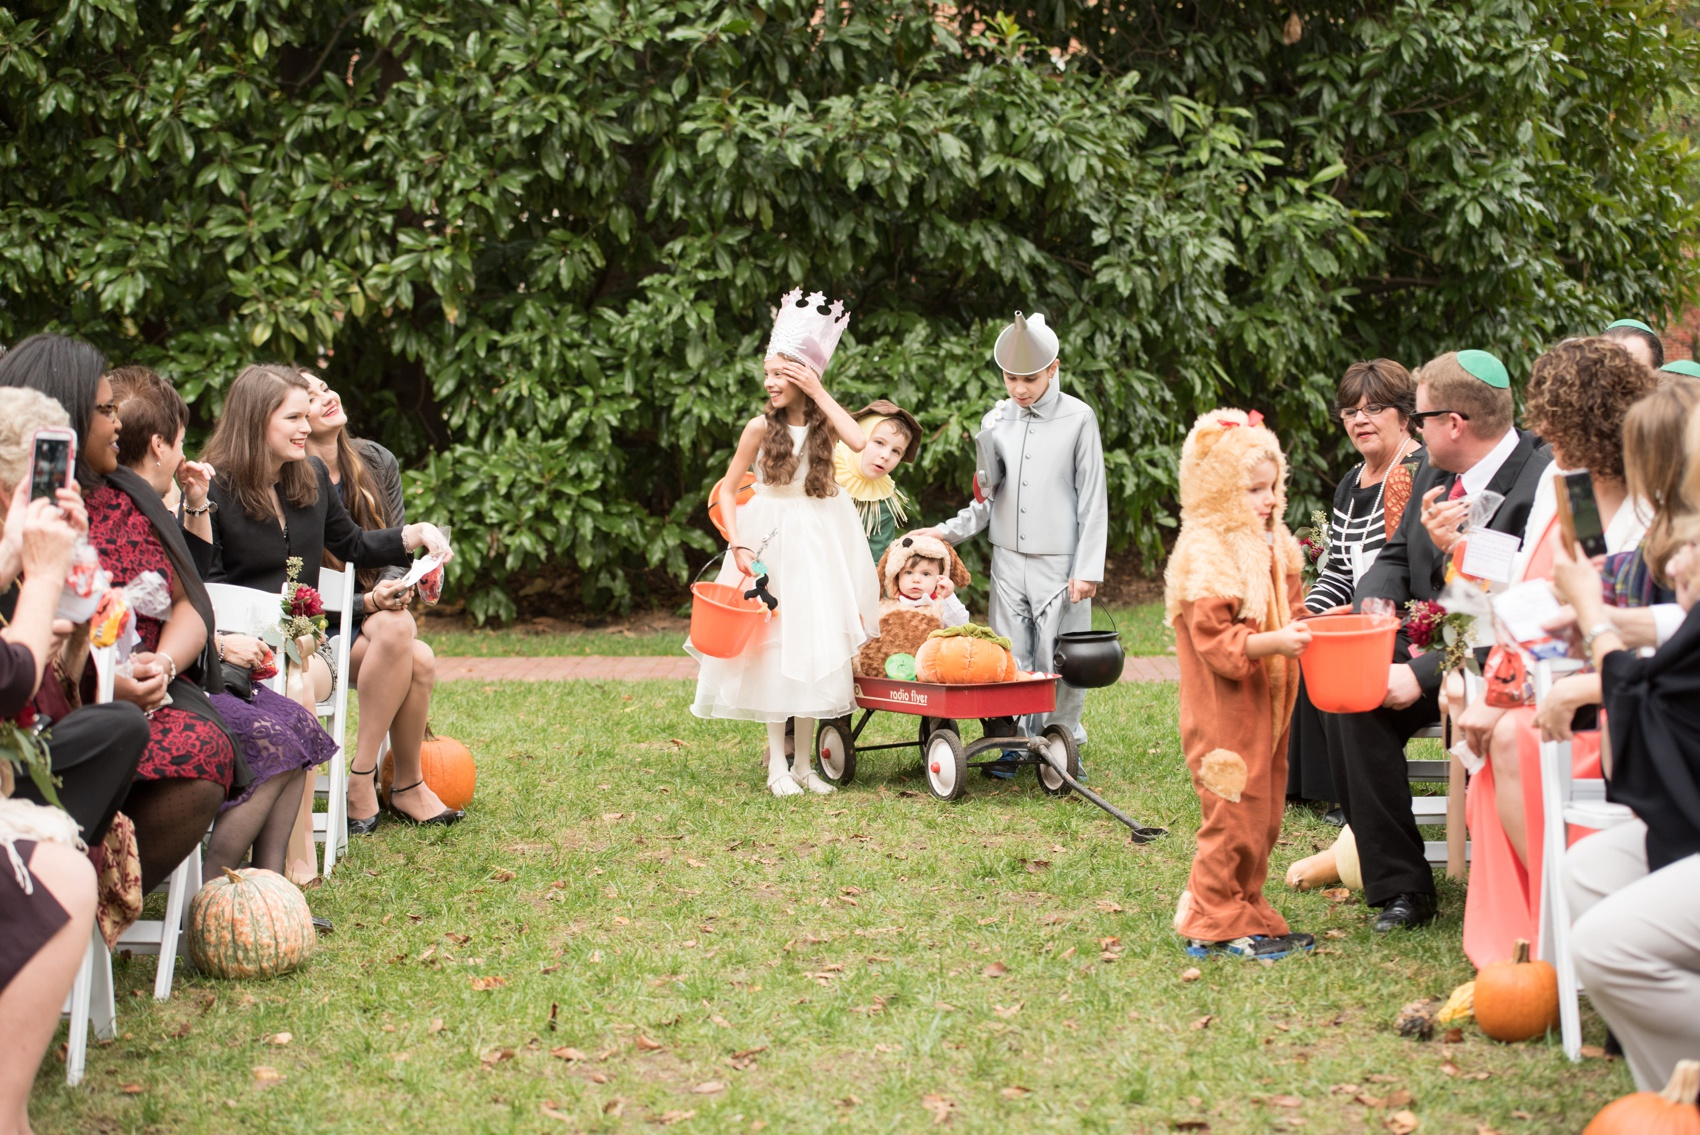 The Carolina Inn wedding photos by Mikkel Paige Photography, Raleigh wedding photographer. Planning by A Swanky Affair and flowers by Tre Bella for a fall pumpkin Halloween inspired outdoor ceremony with The Wizard of Oz ring bearers and flower girl.